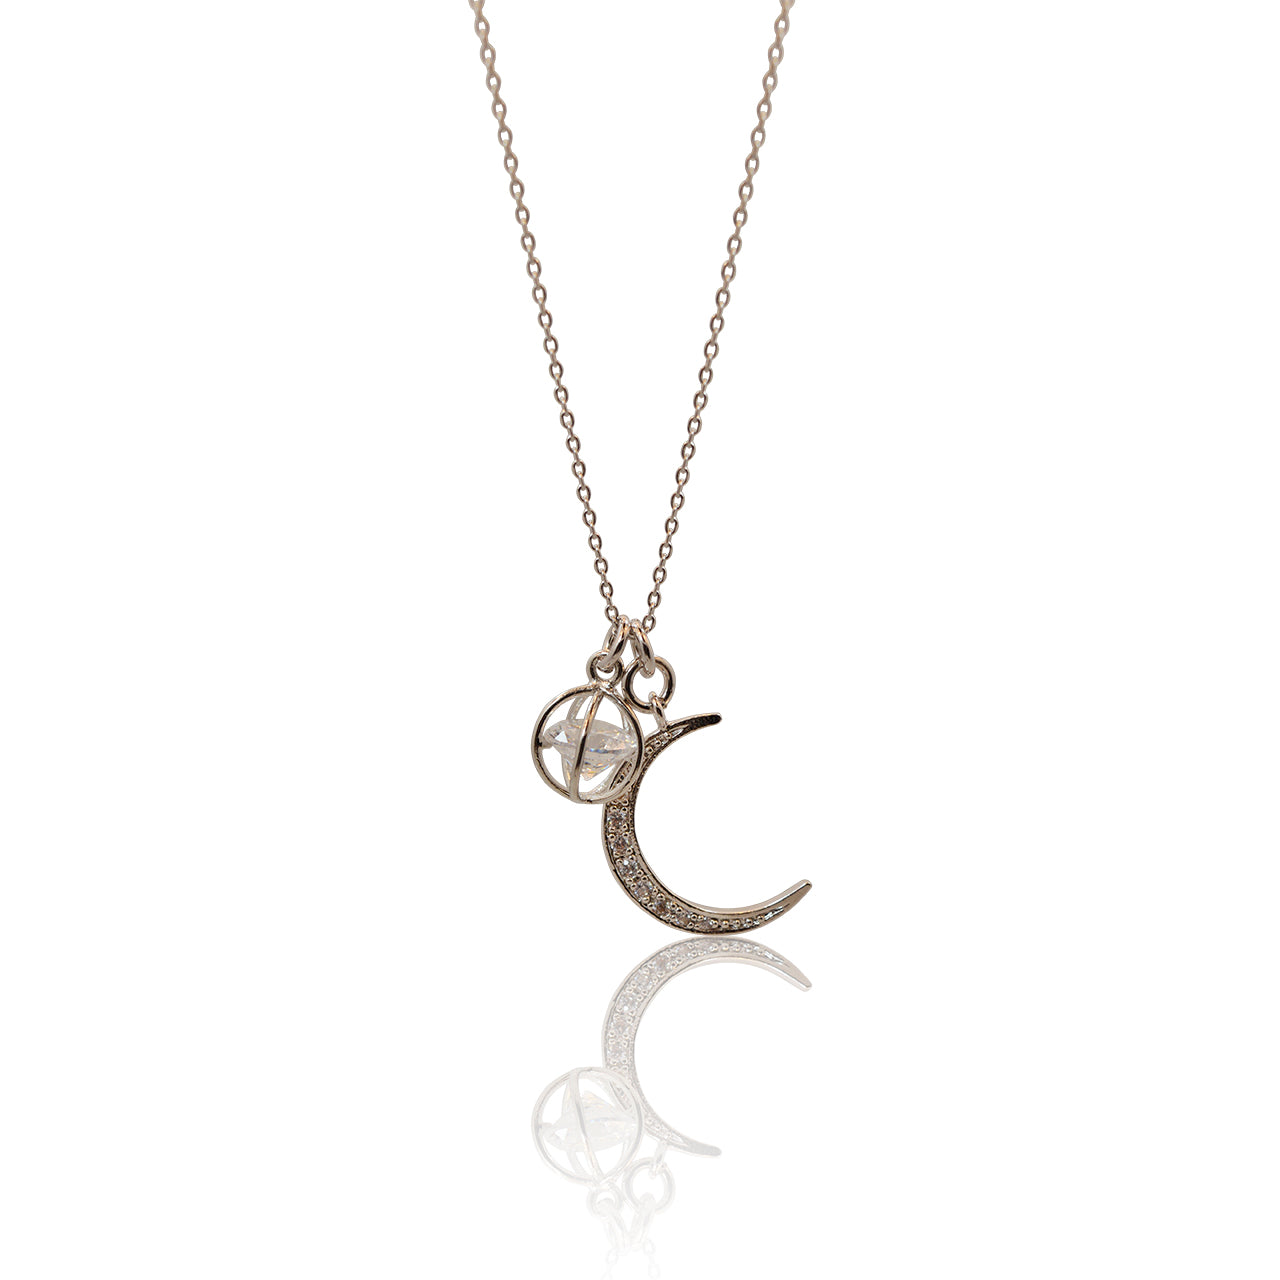 Crystal Moon Ball Necklace